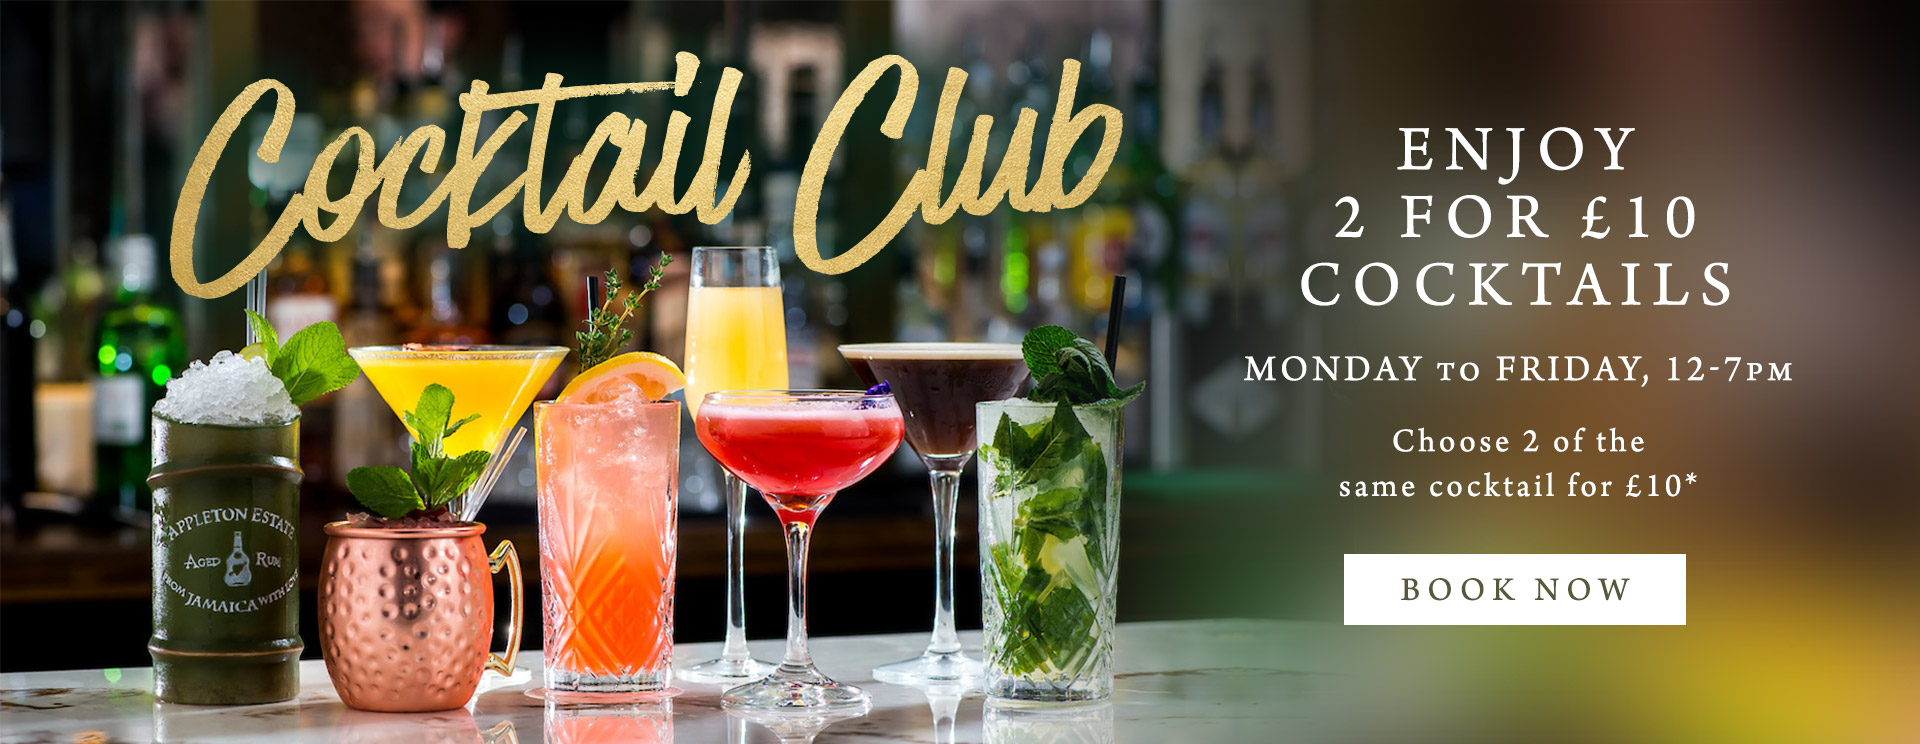 2 for £10 cocktails at The Orange Tree